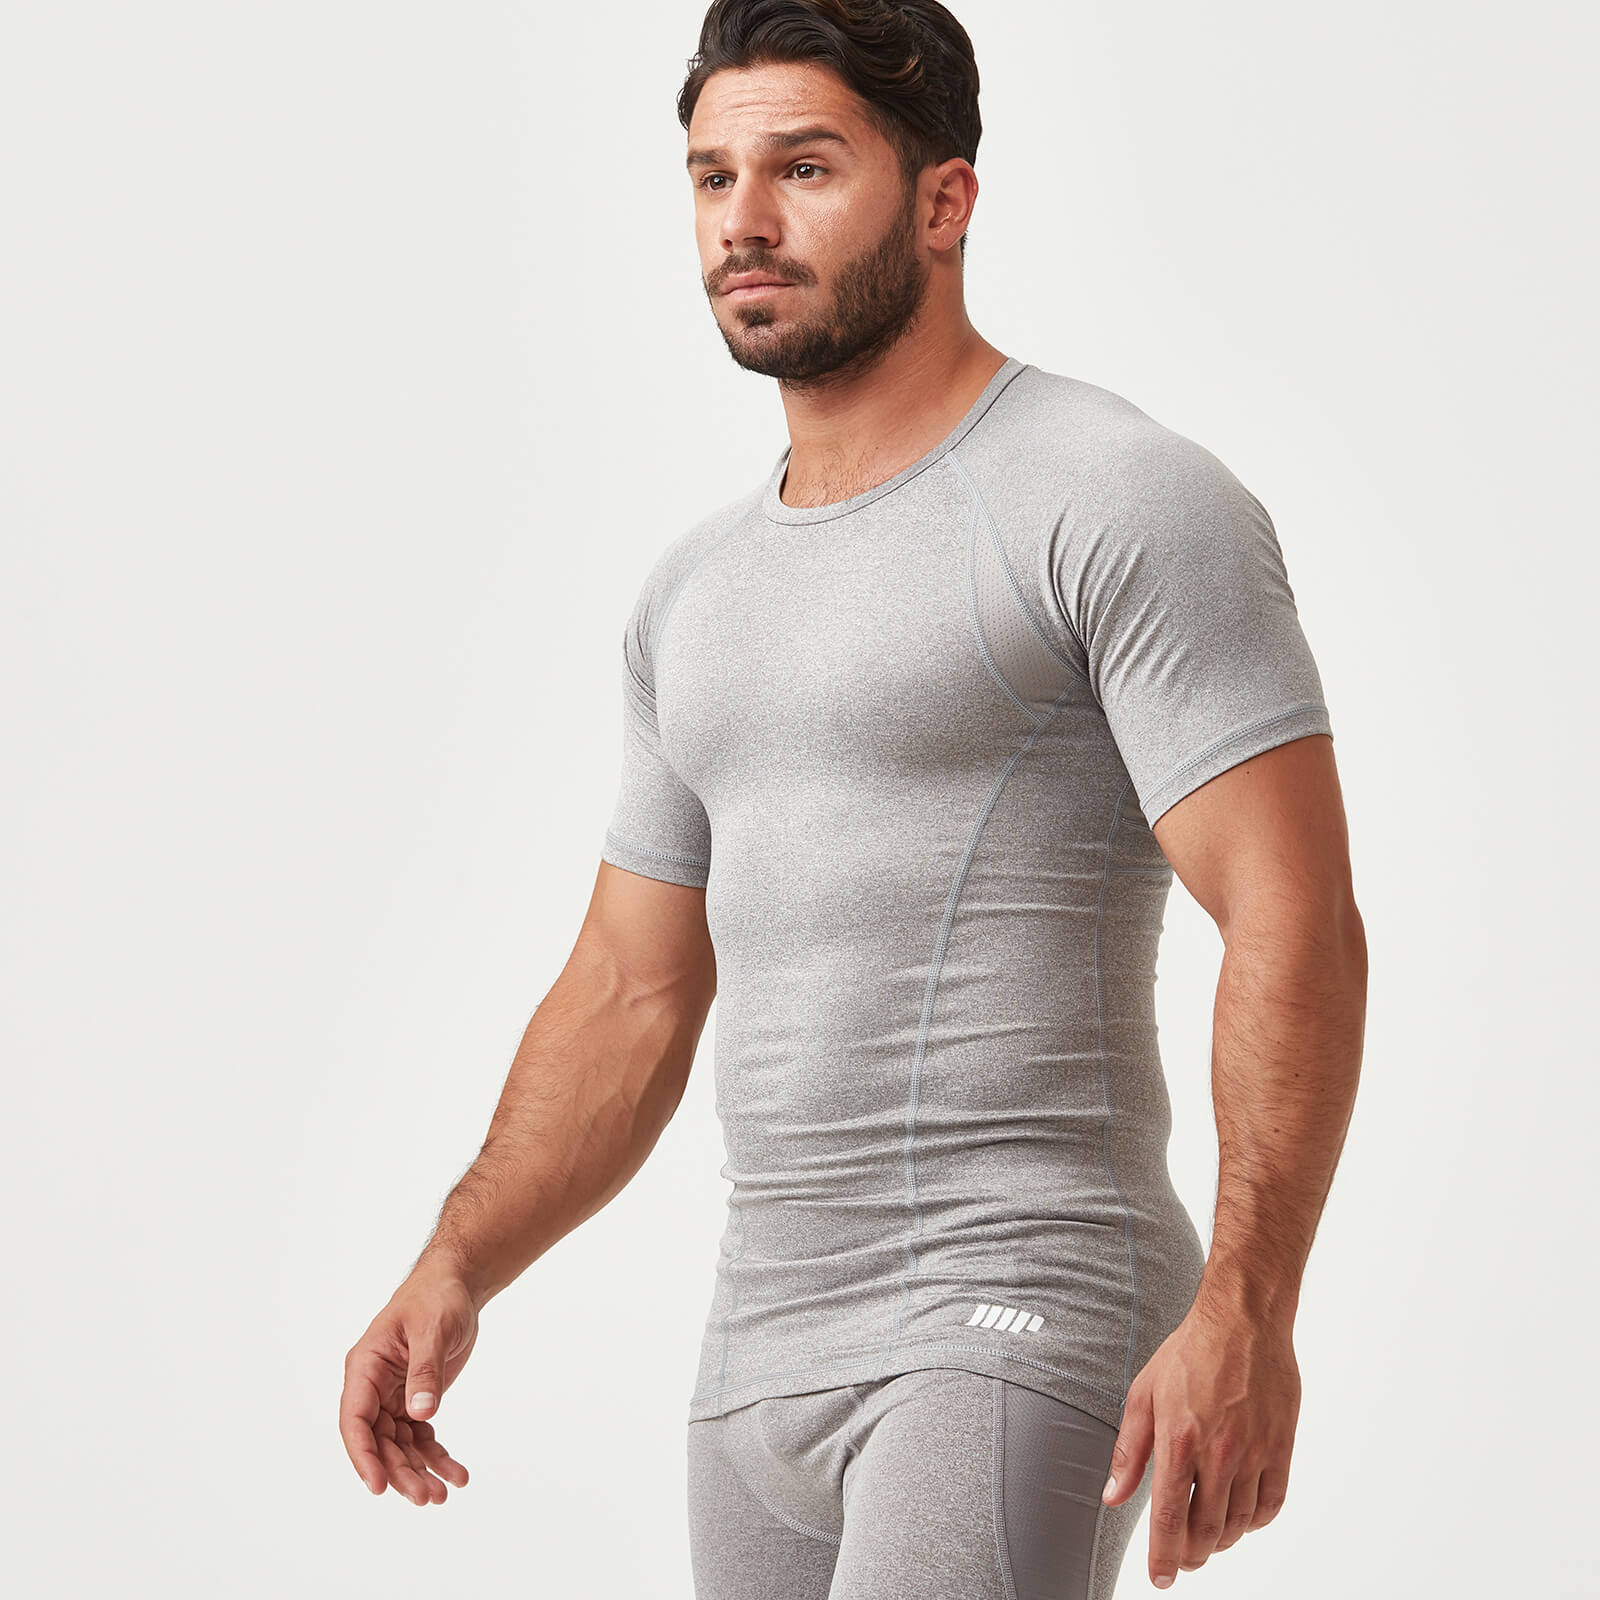 Myprotein Compression Short Sleeve T-Shirt - Grey Marl - XXL